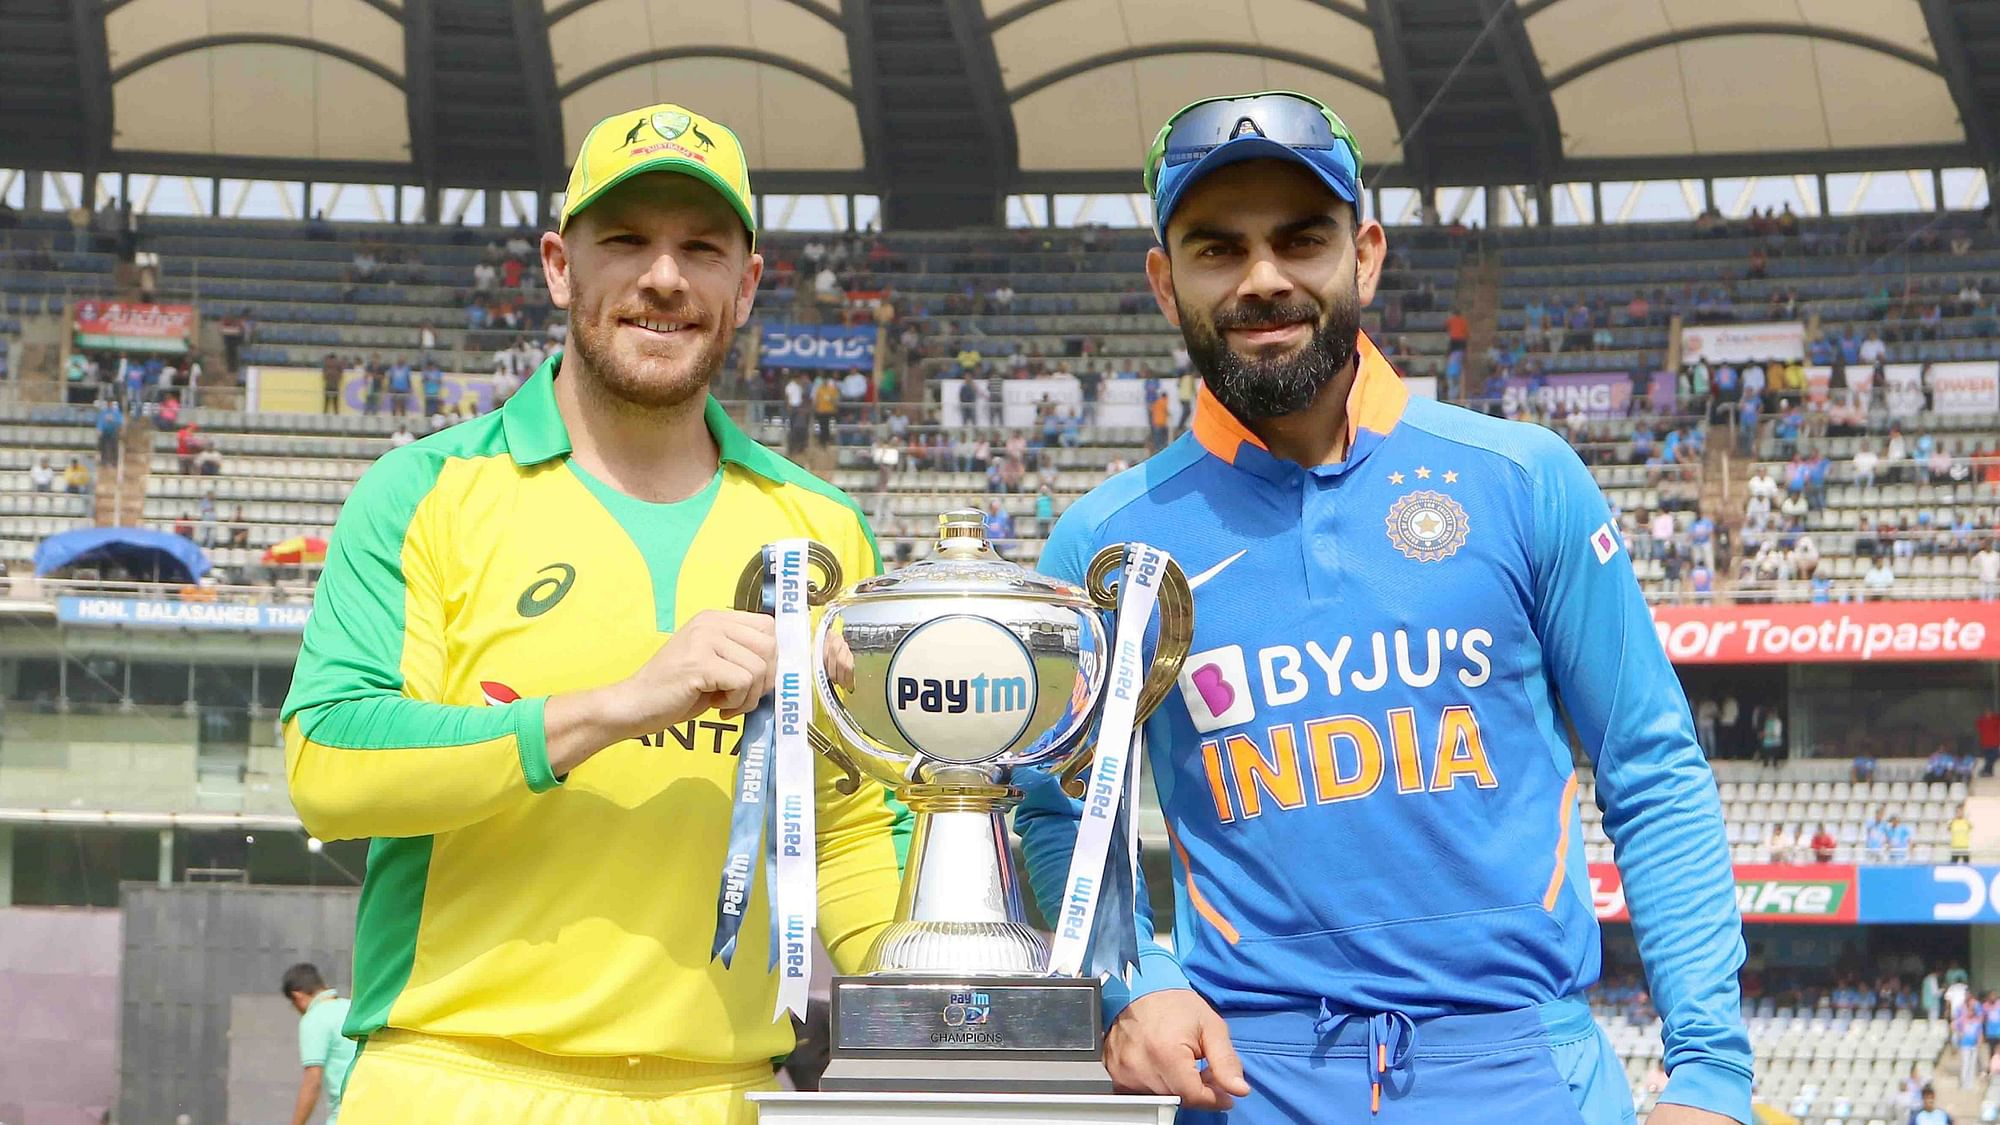 India vs Aus 3rd ODI: Series on the Line, Aus Elect to Bat First